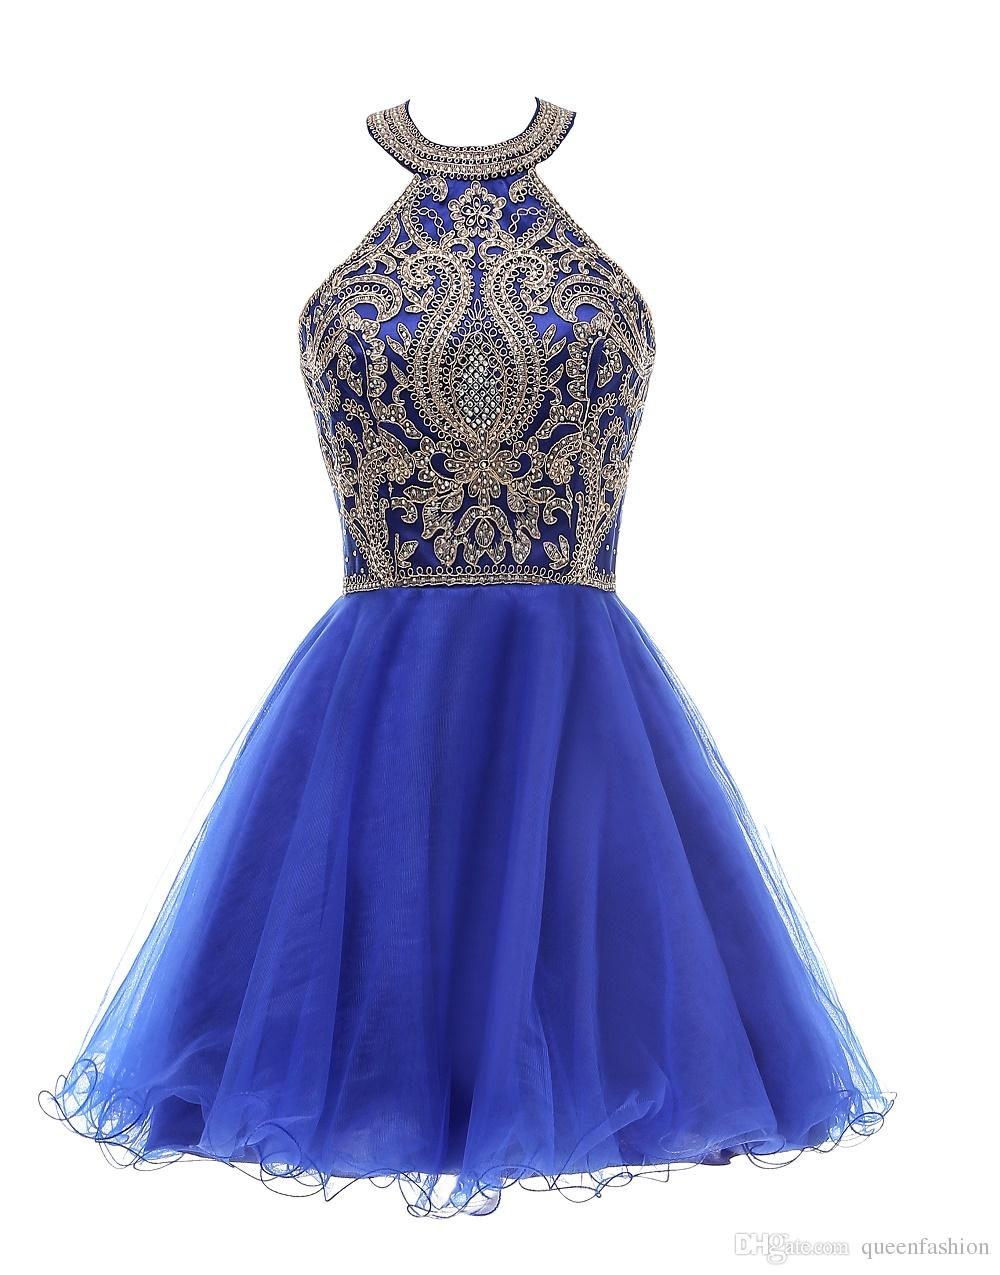 5e1f3431bf6 Halter Juniors Cocktail Party Dresses Royal Blue Gold Lace Appliques Homecoming  Dresses Short Sweet 15 Prom Dresses Designer Dresses Dresses For Women From  ...